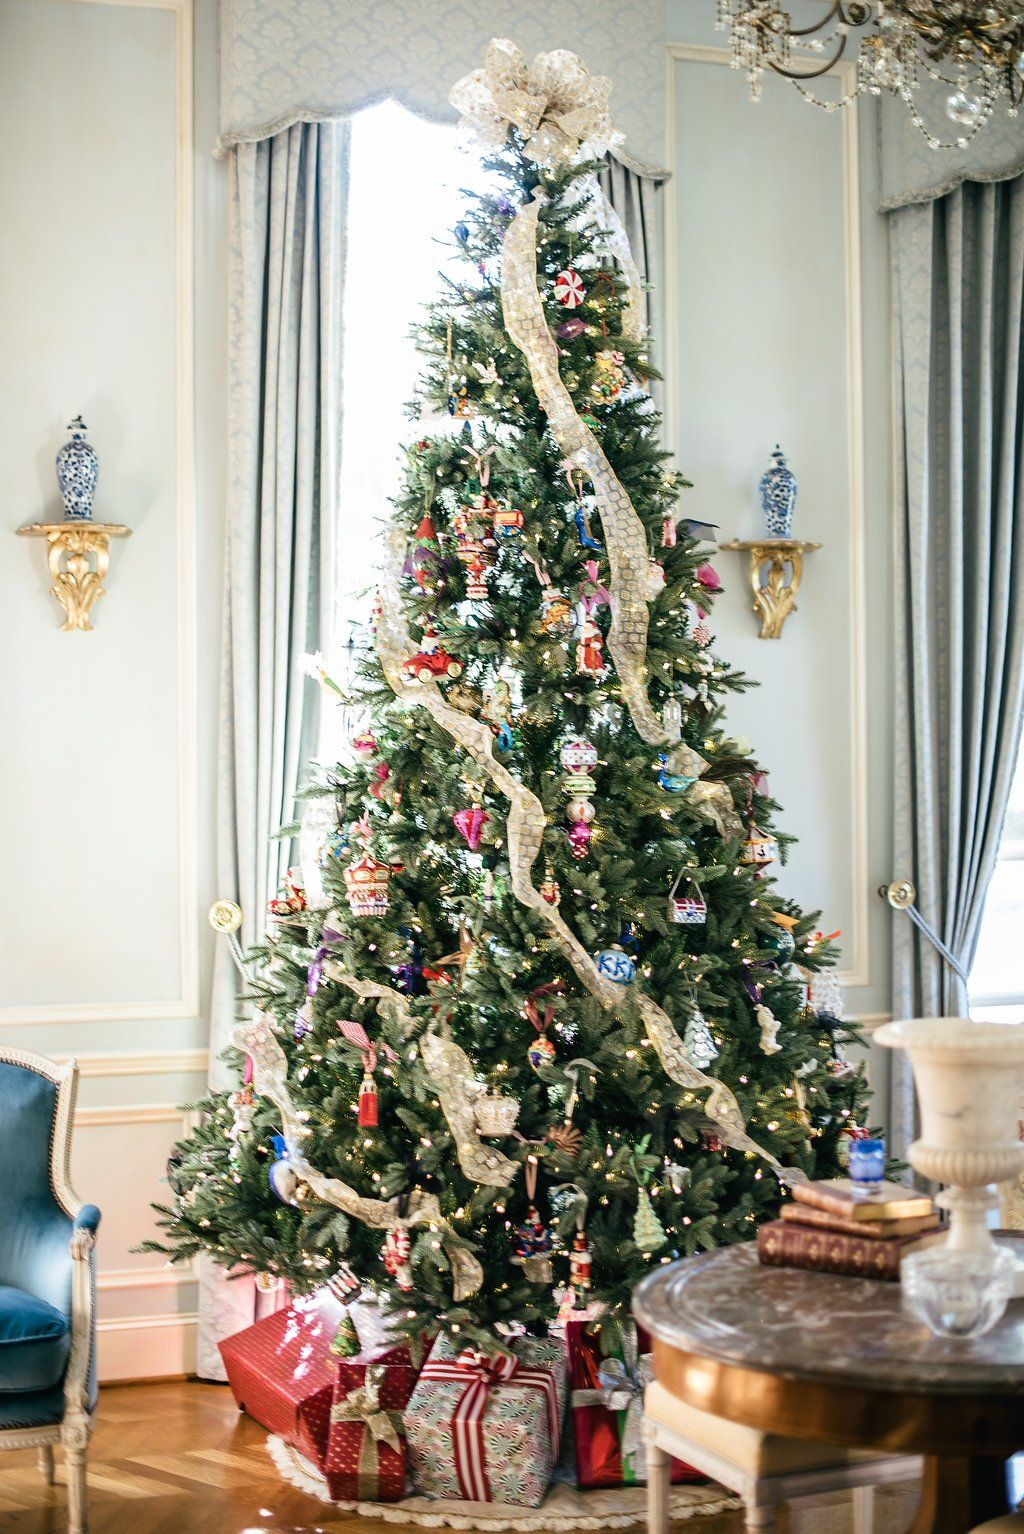 How To Decorate For The Holidays Without Breaking The Bank